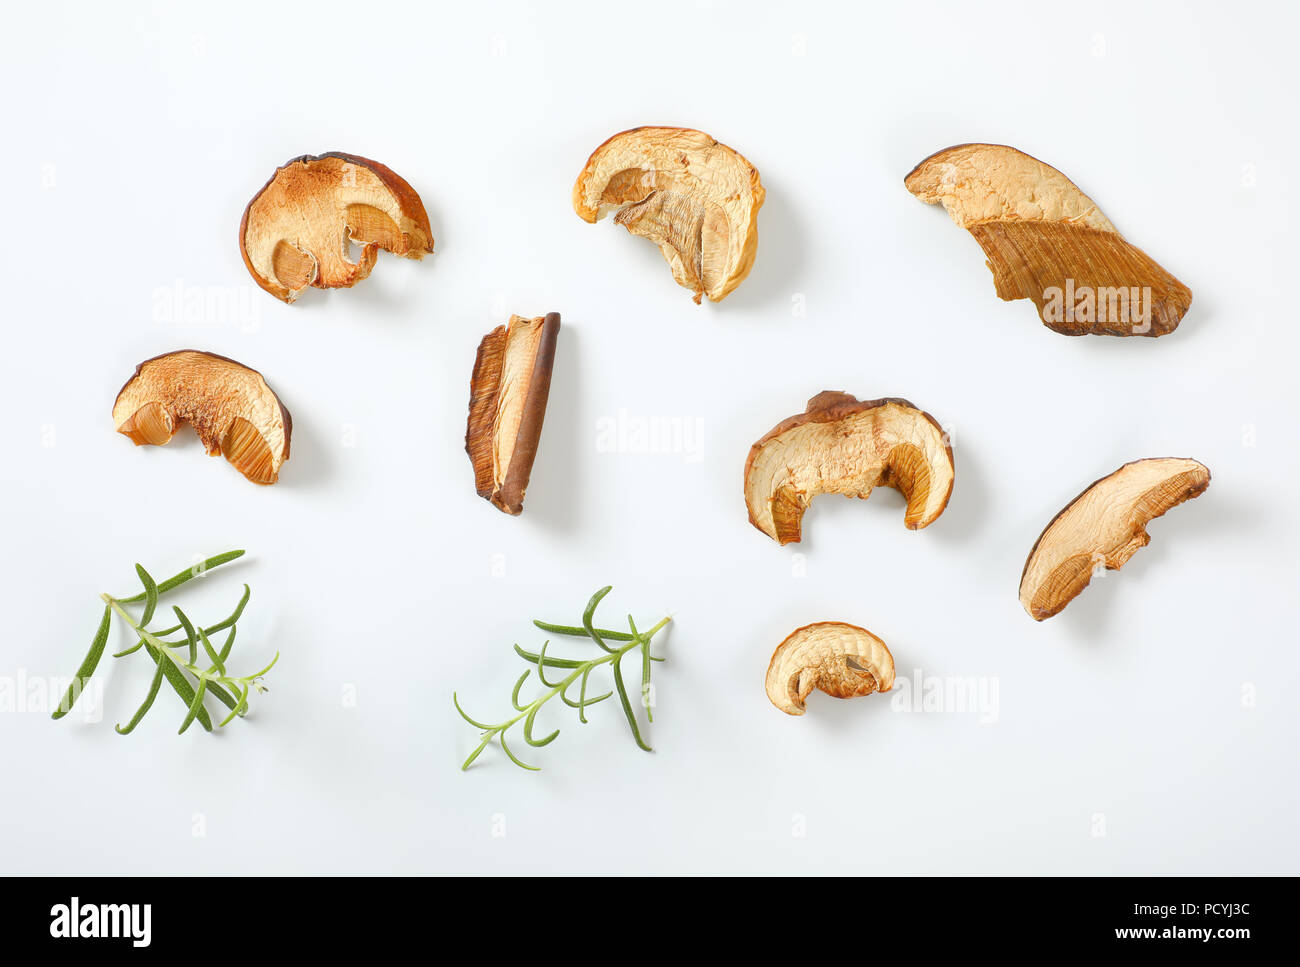 slices of dried mushrooms and rosemary on white background - Stock Image